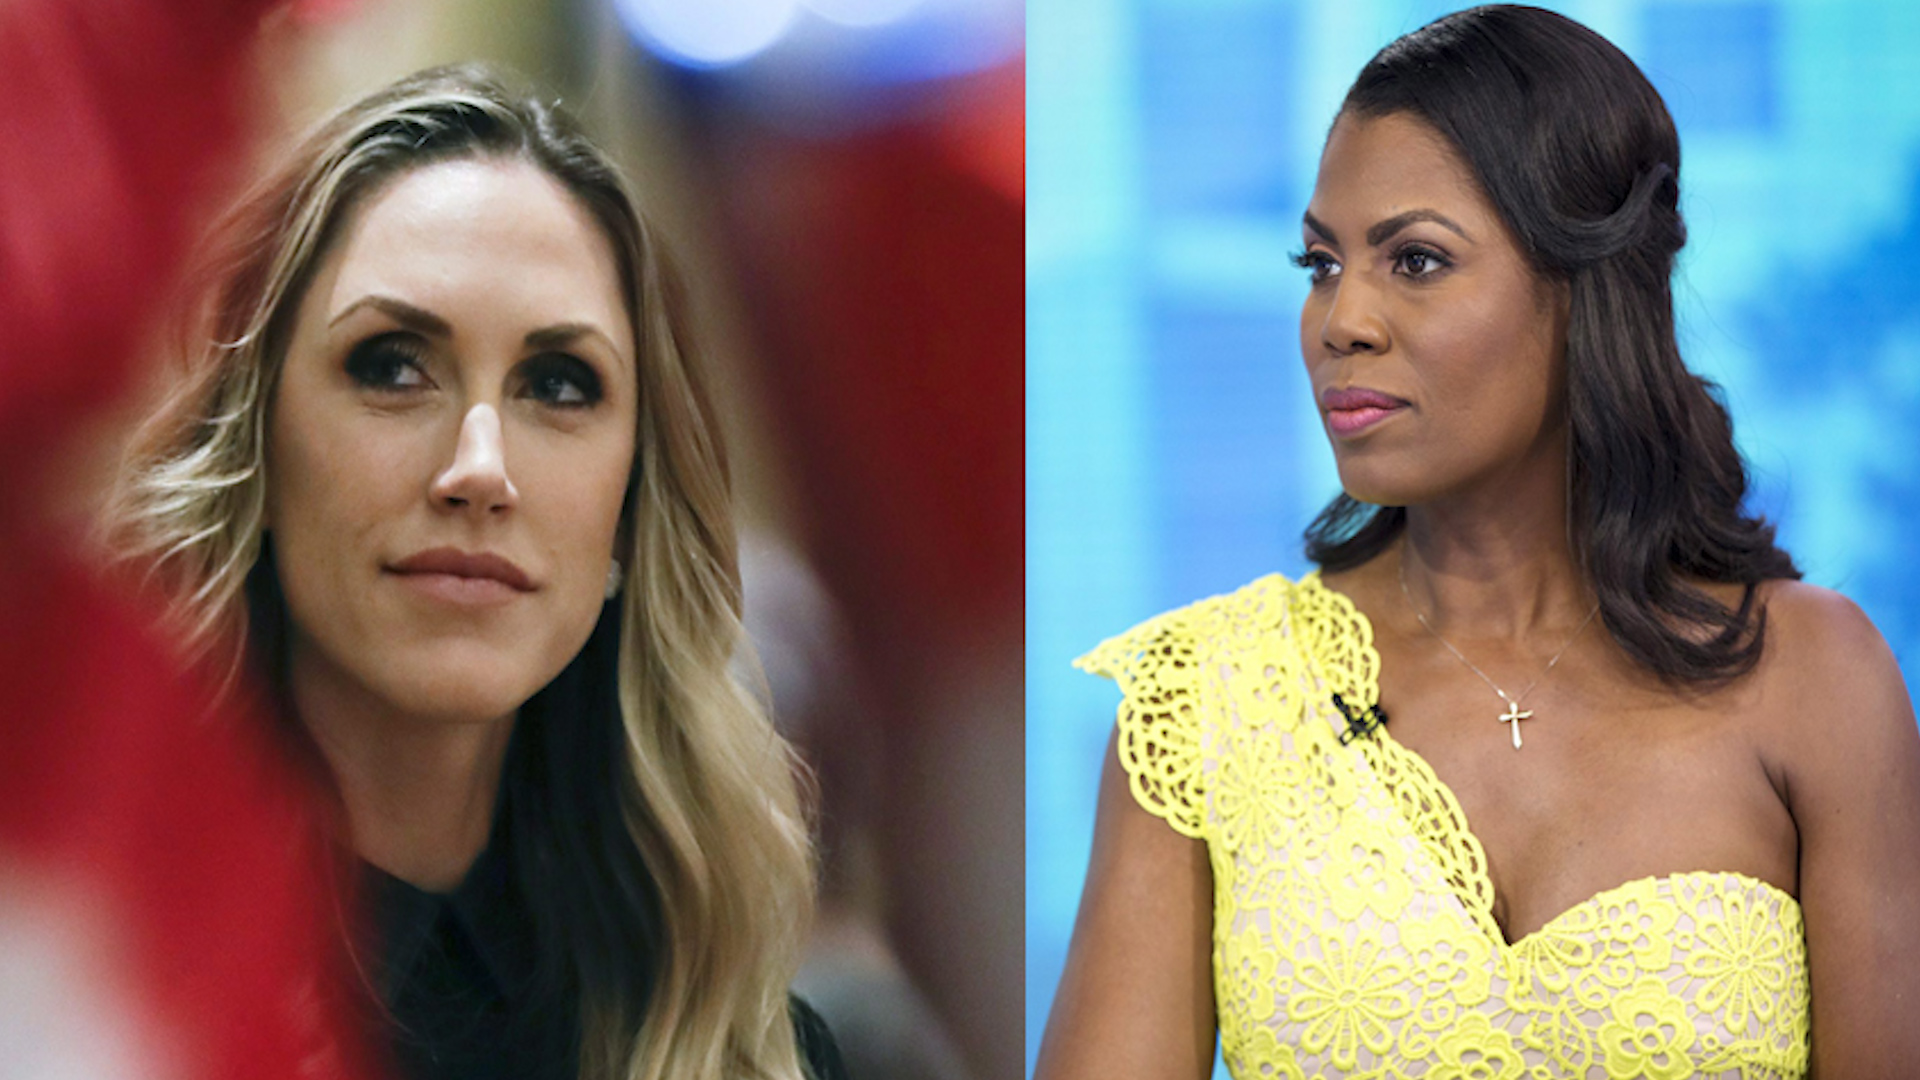 Omarosa accuses Trump of wanting to start a 'race war'